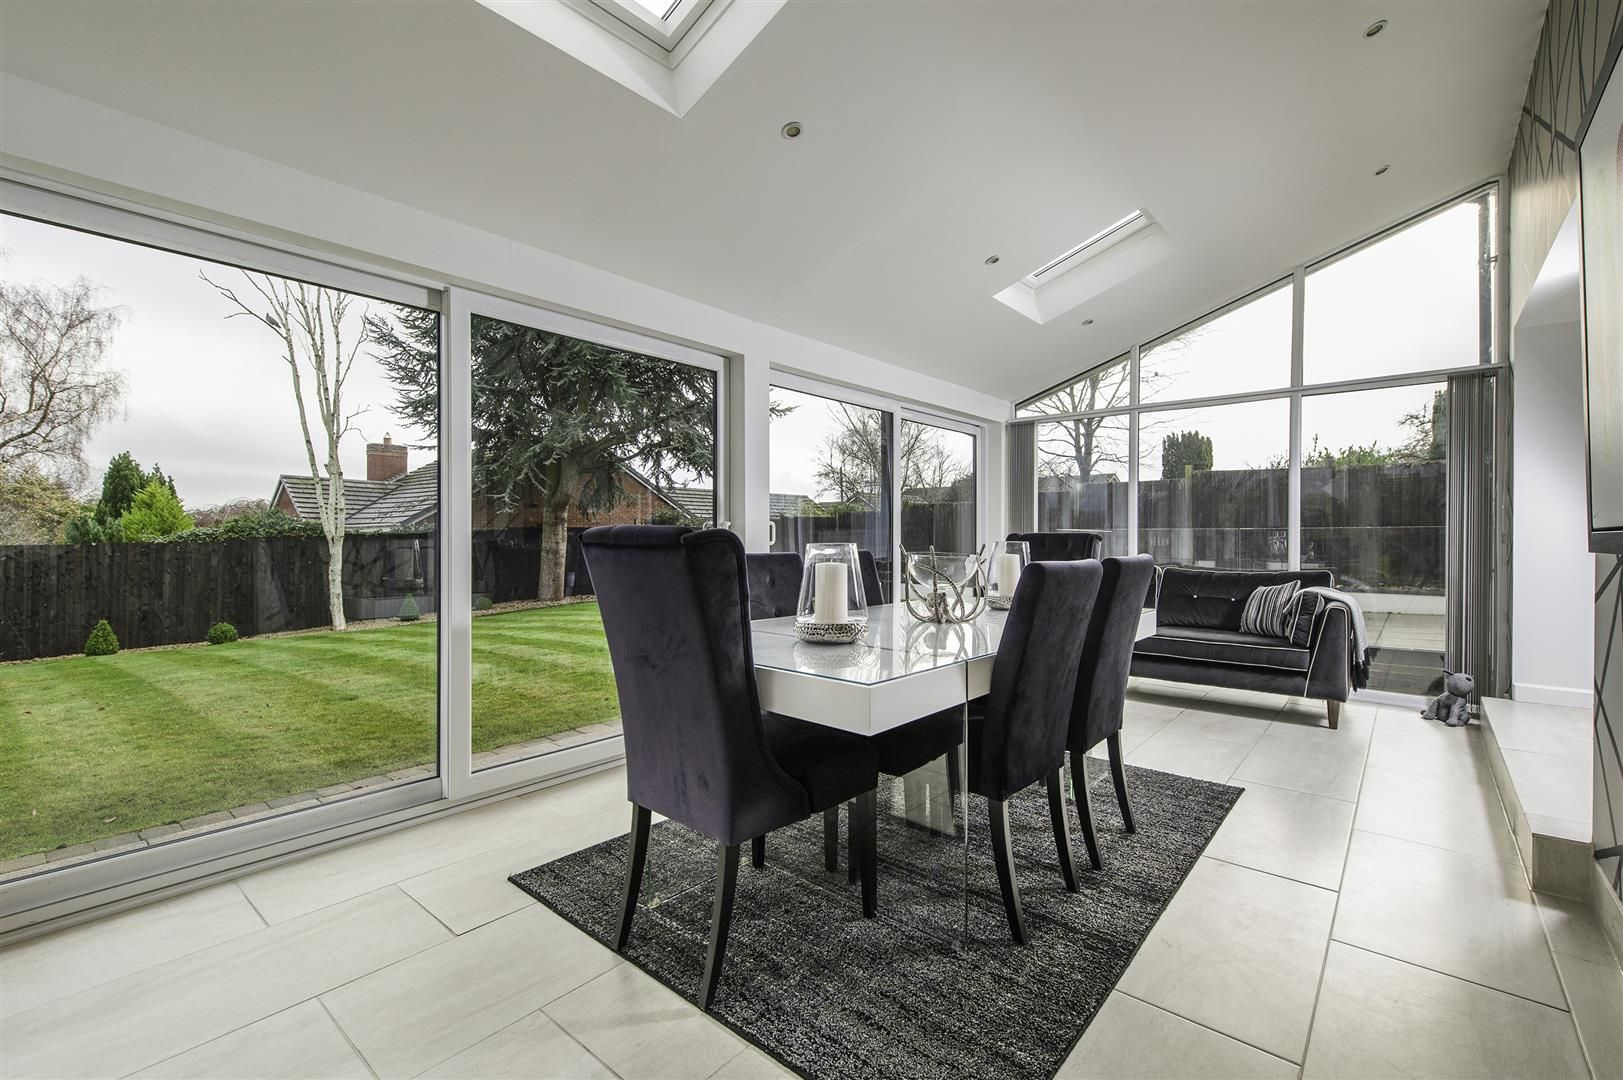 4 bed detached for sale in Stourton  - Property Image 10